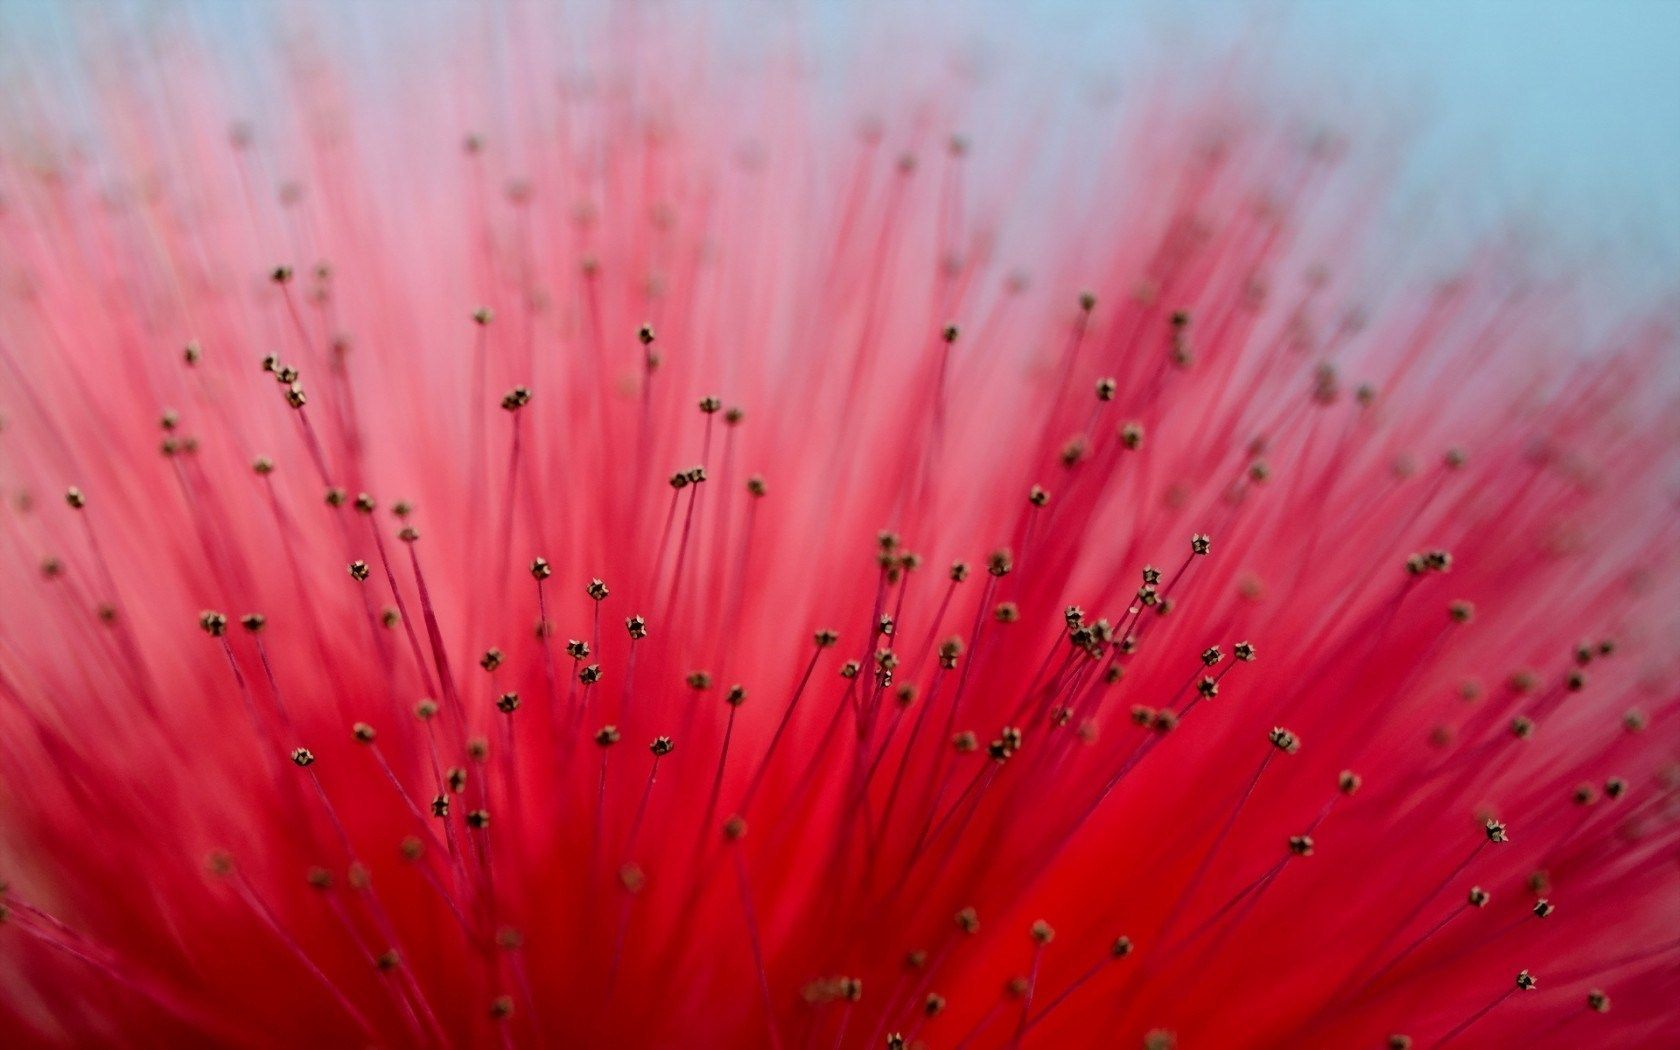 closeup flower macro Illustrations Posters Pinterest